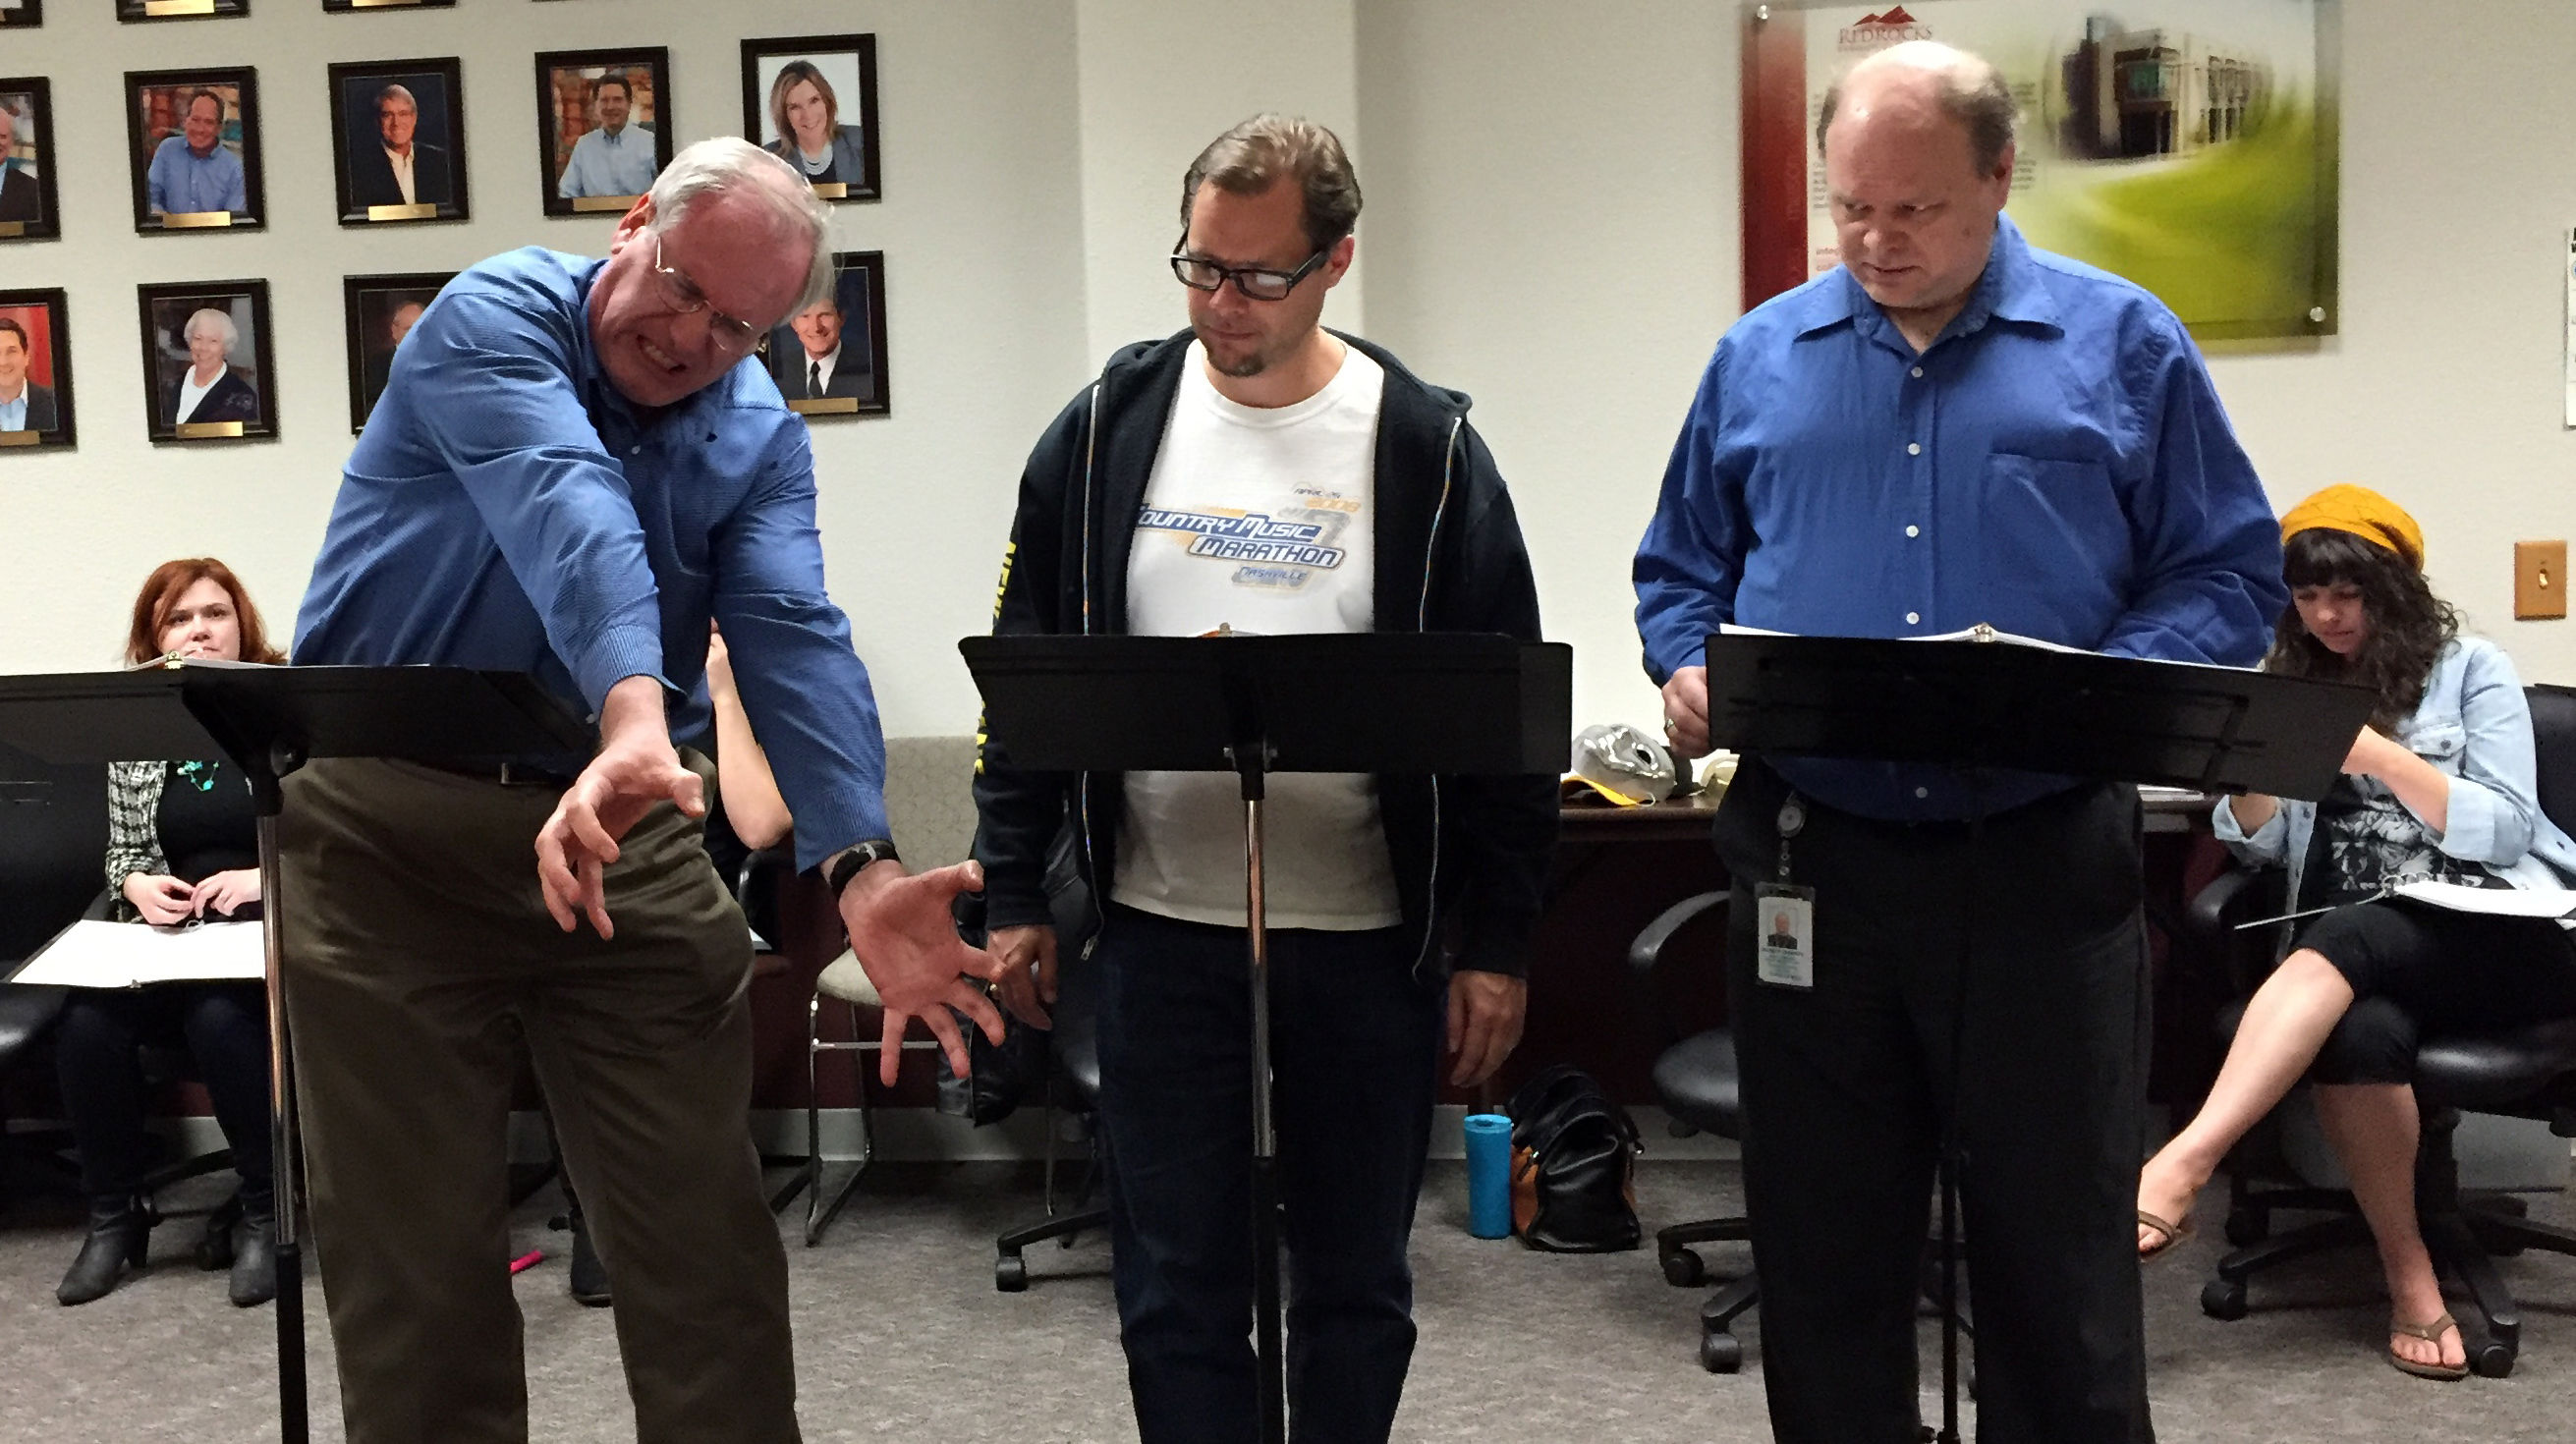 One Night Stand Theatre rehearsing for the staged reading of Shakespeare's Curse